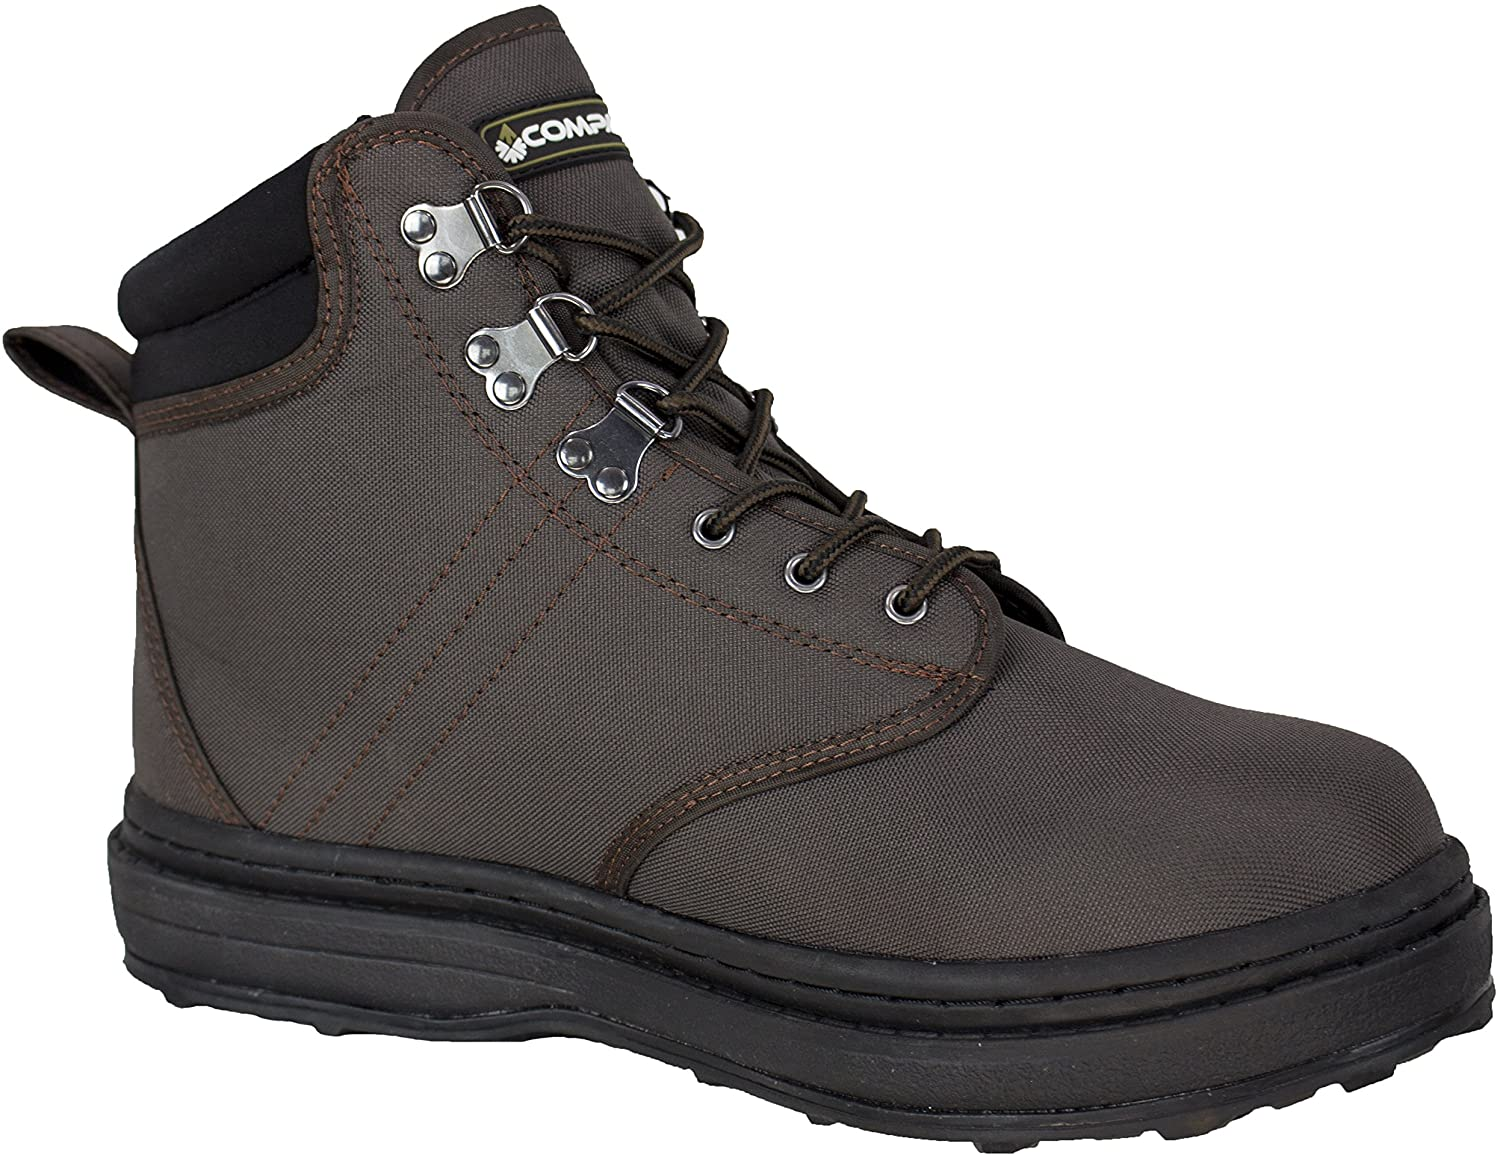 95481-PE Compass 360 Stillwater II Cleated Sole Wading Shoes, Size 8